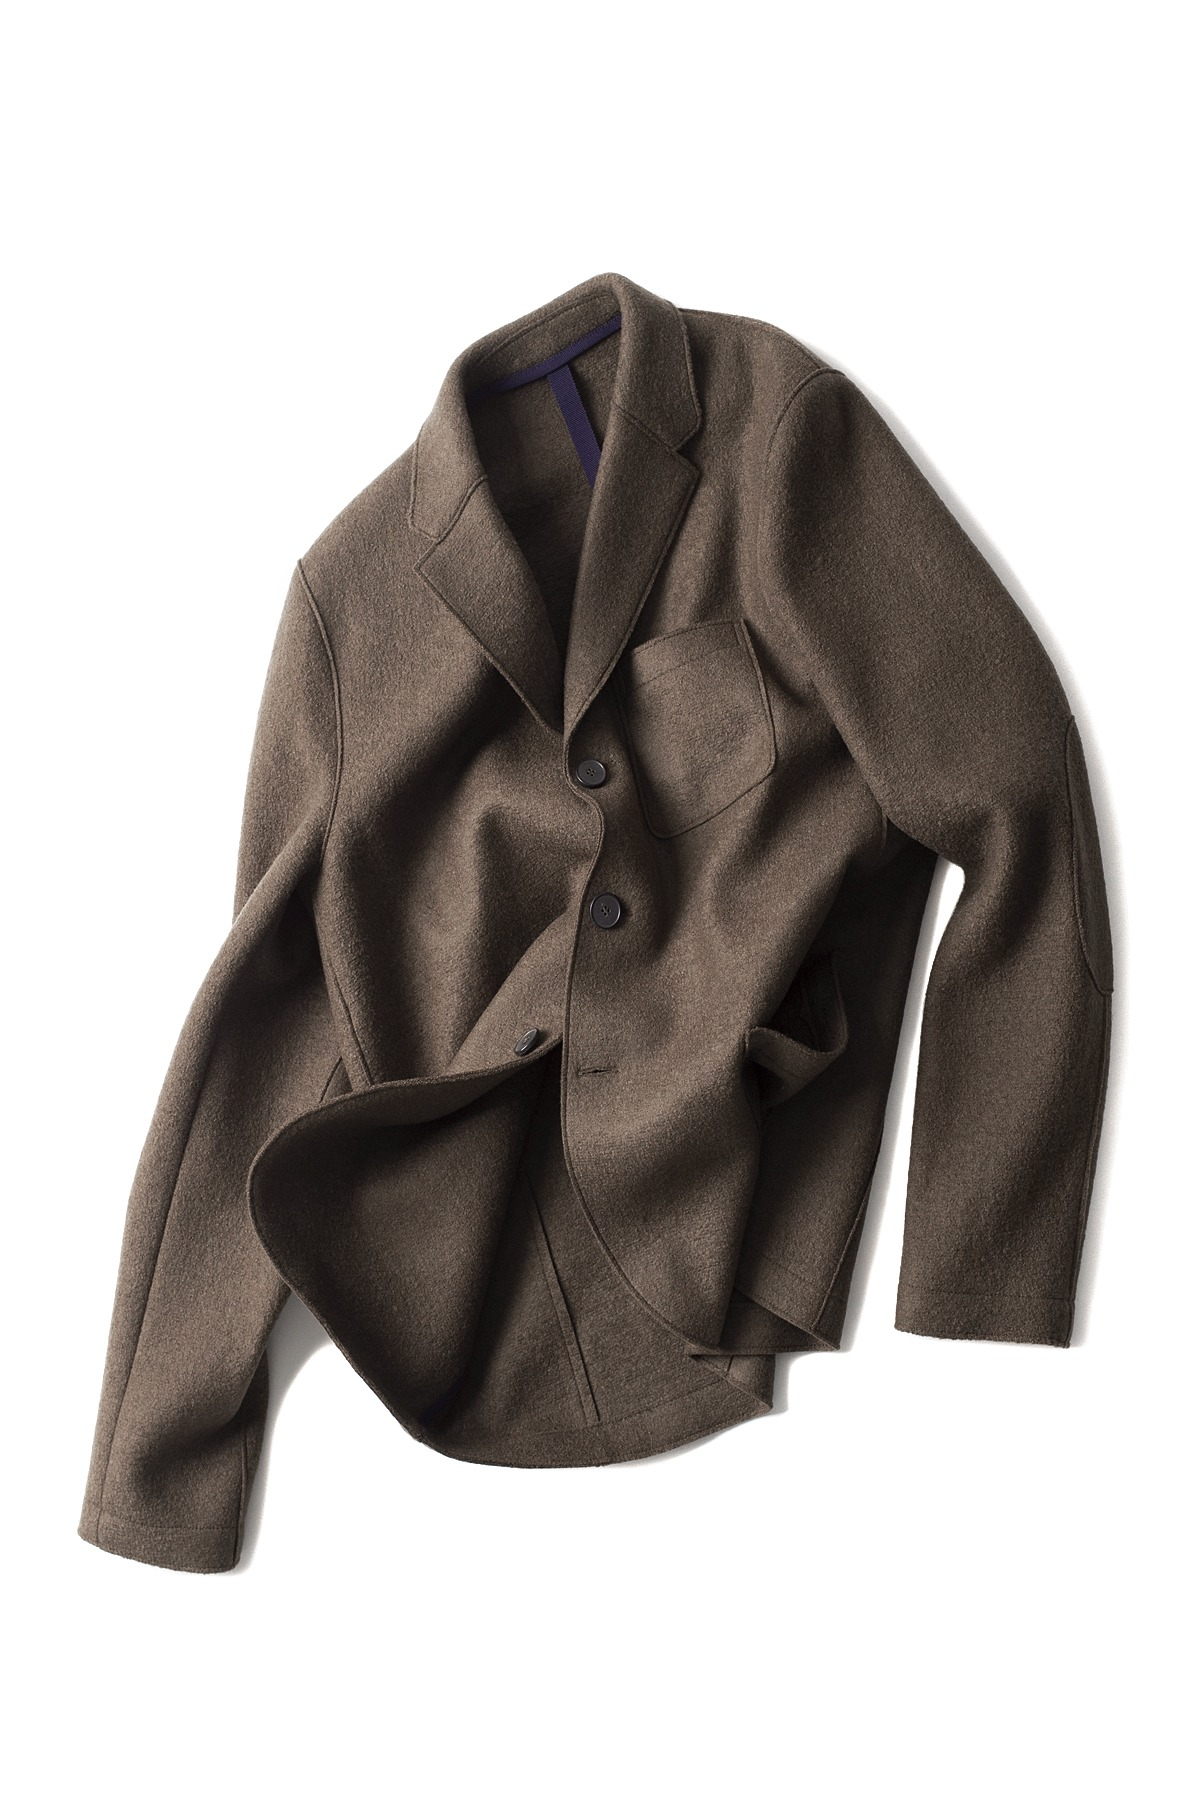 Harris Wharf London : 3.B Boxy Pressed Wool Jacket (Brown)